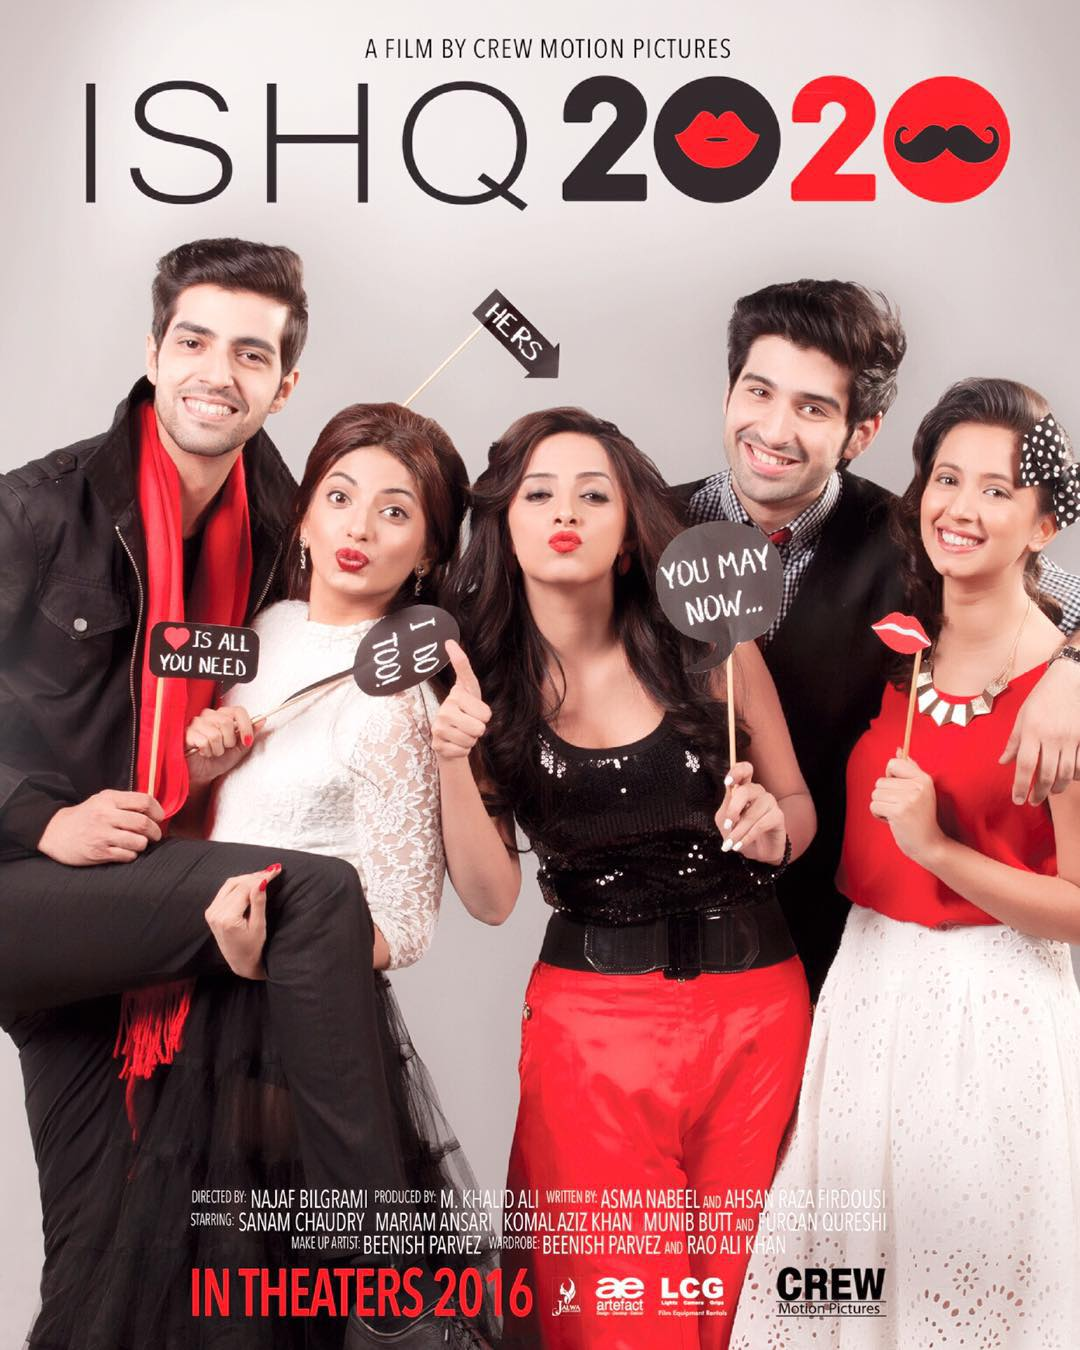 ishq 2020 movie poster